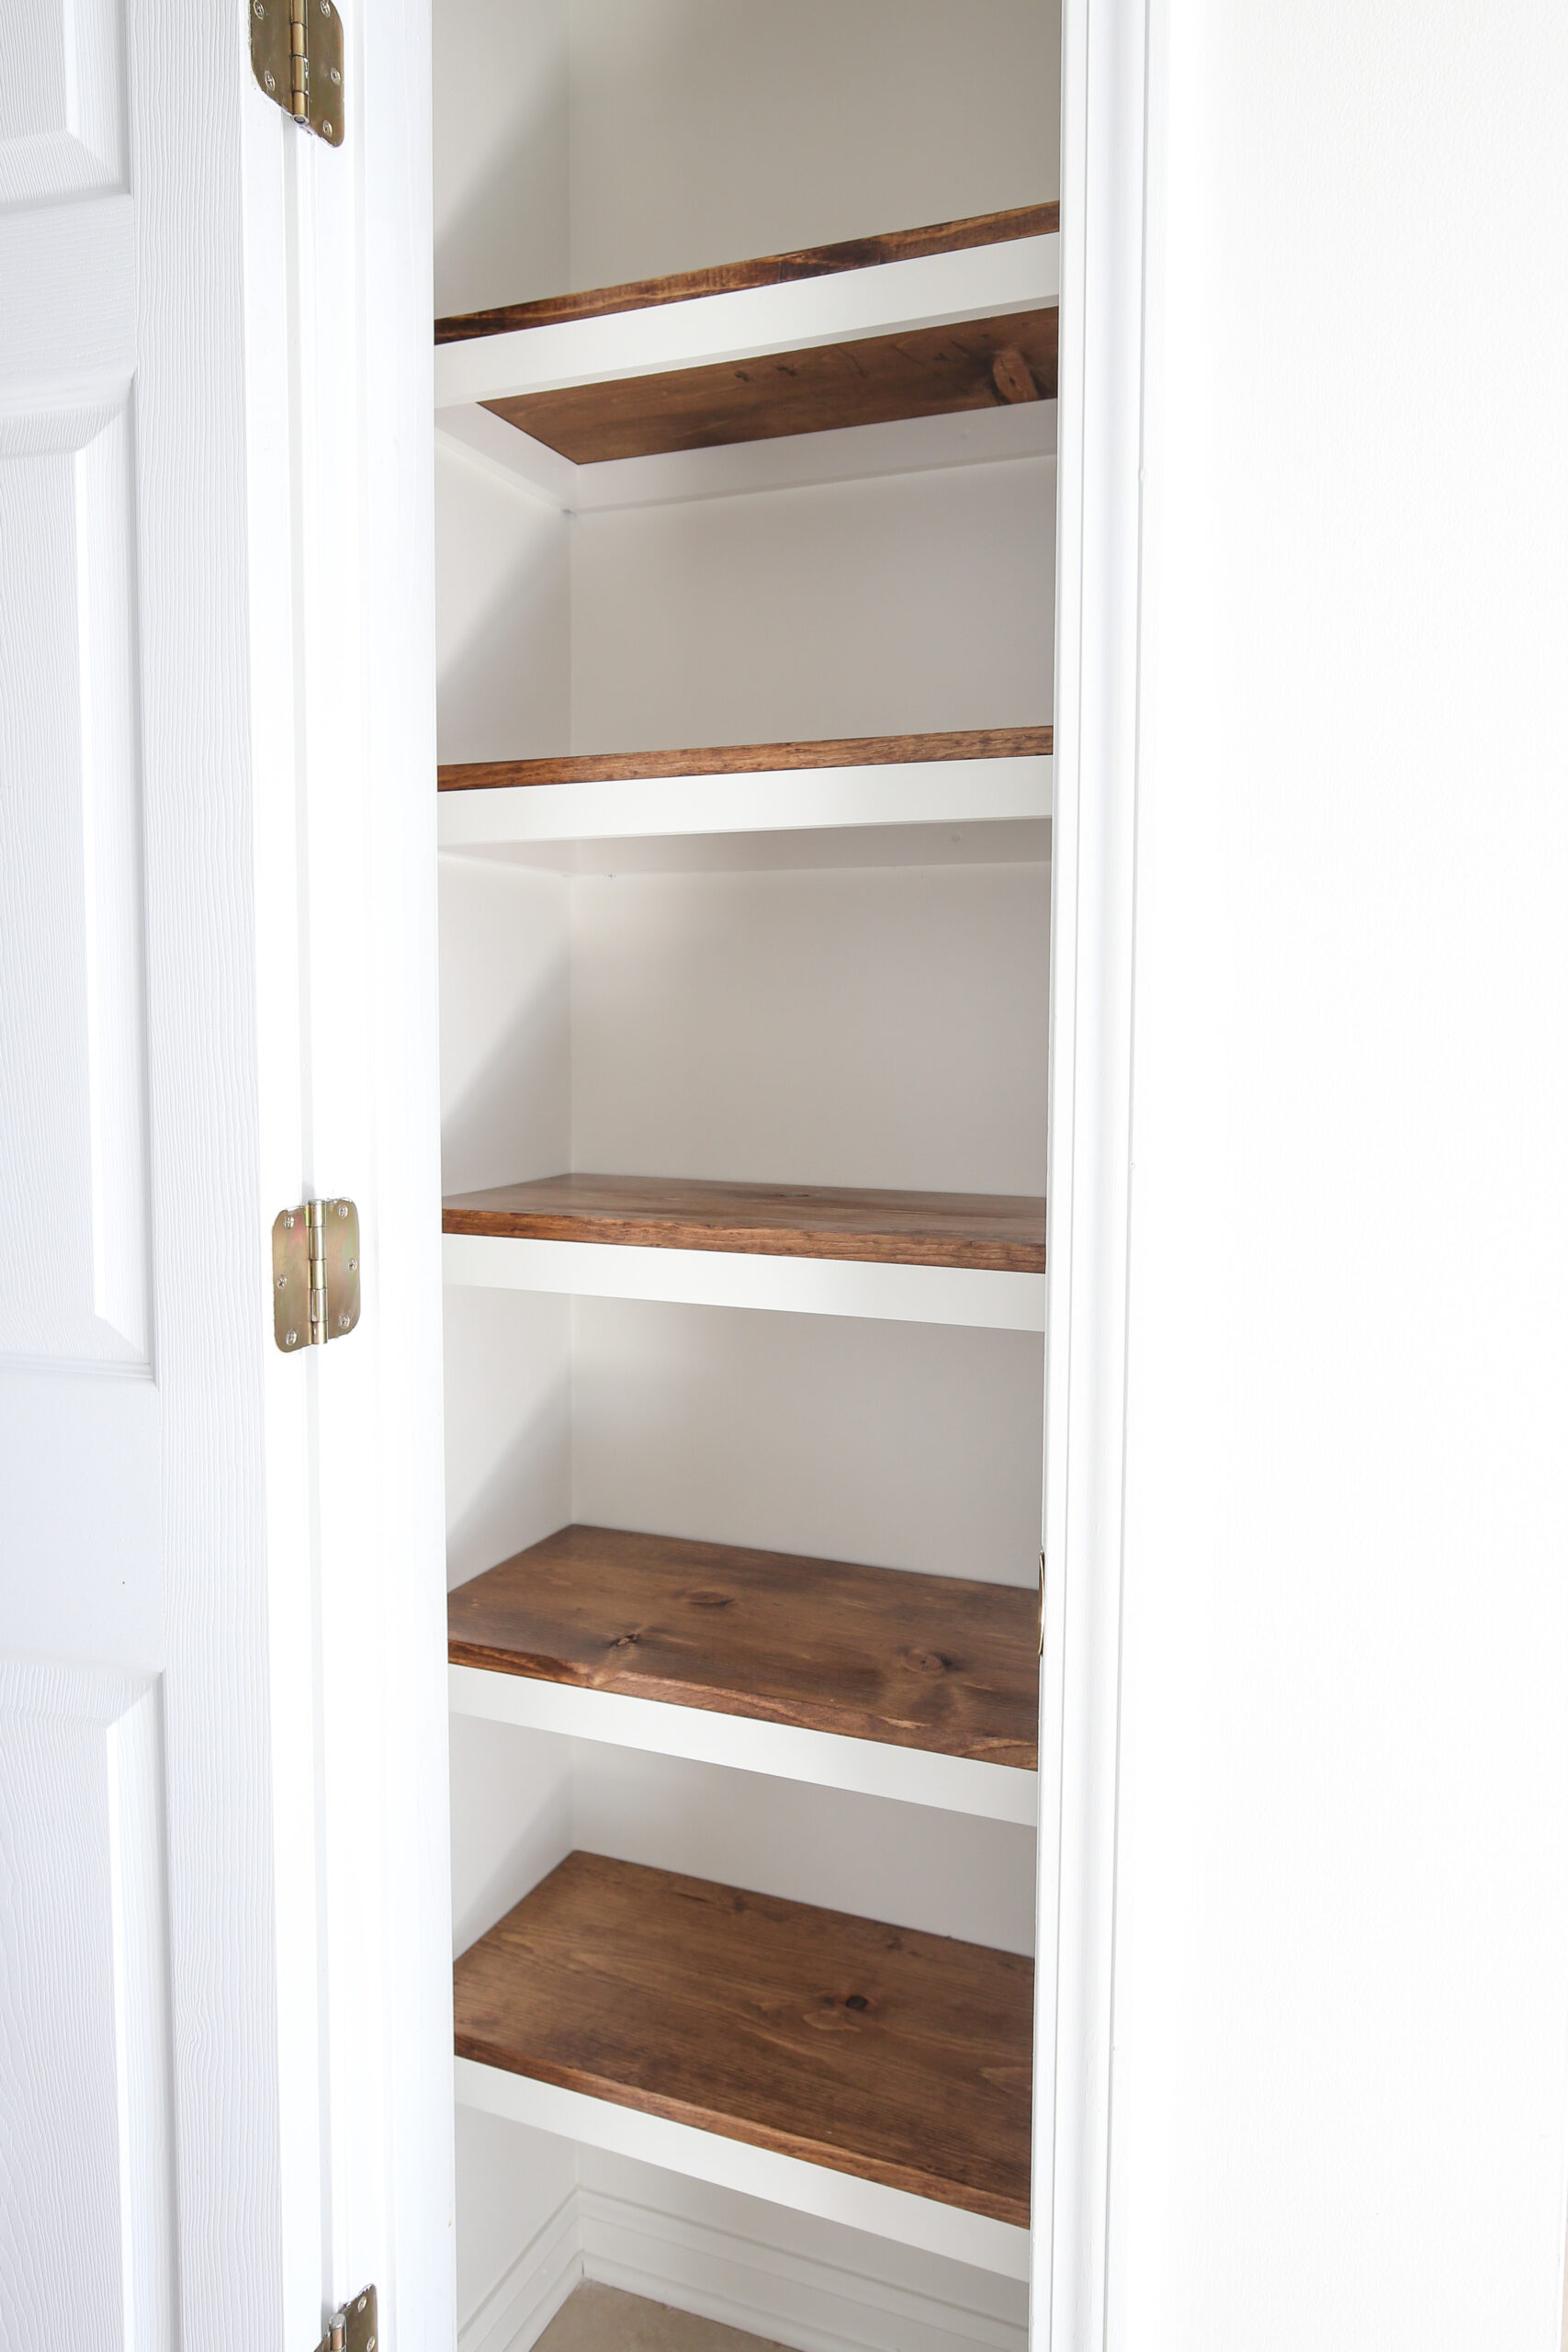 DIY Pantry Shelves with stained wood shelves and painted white trim